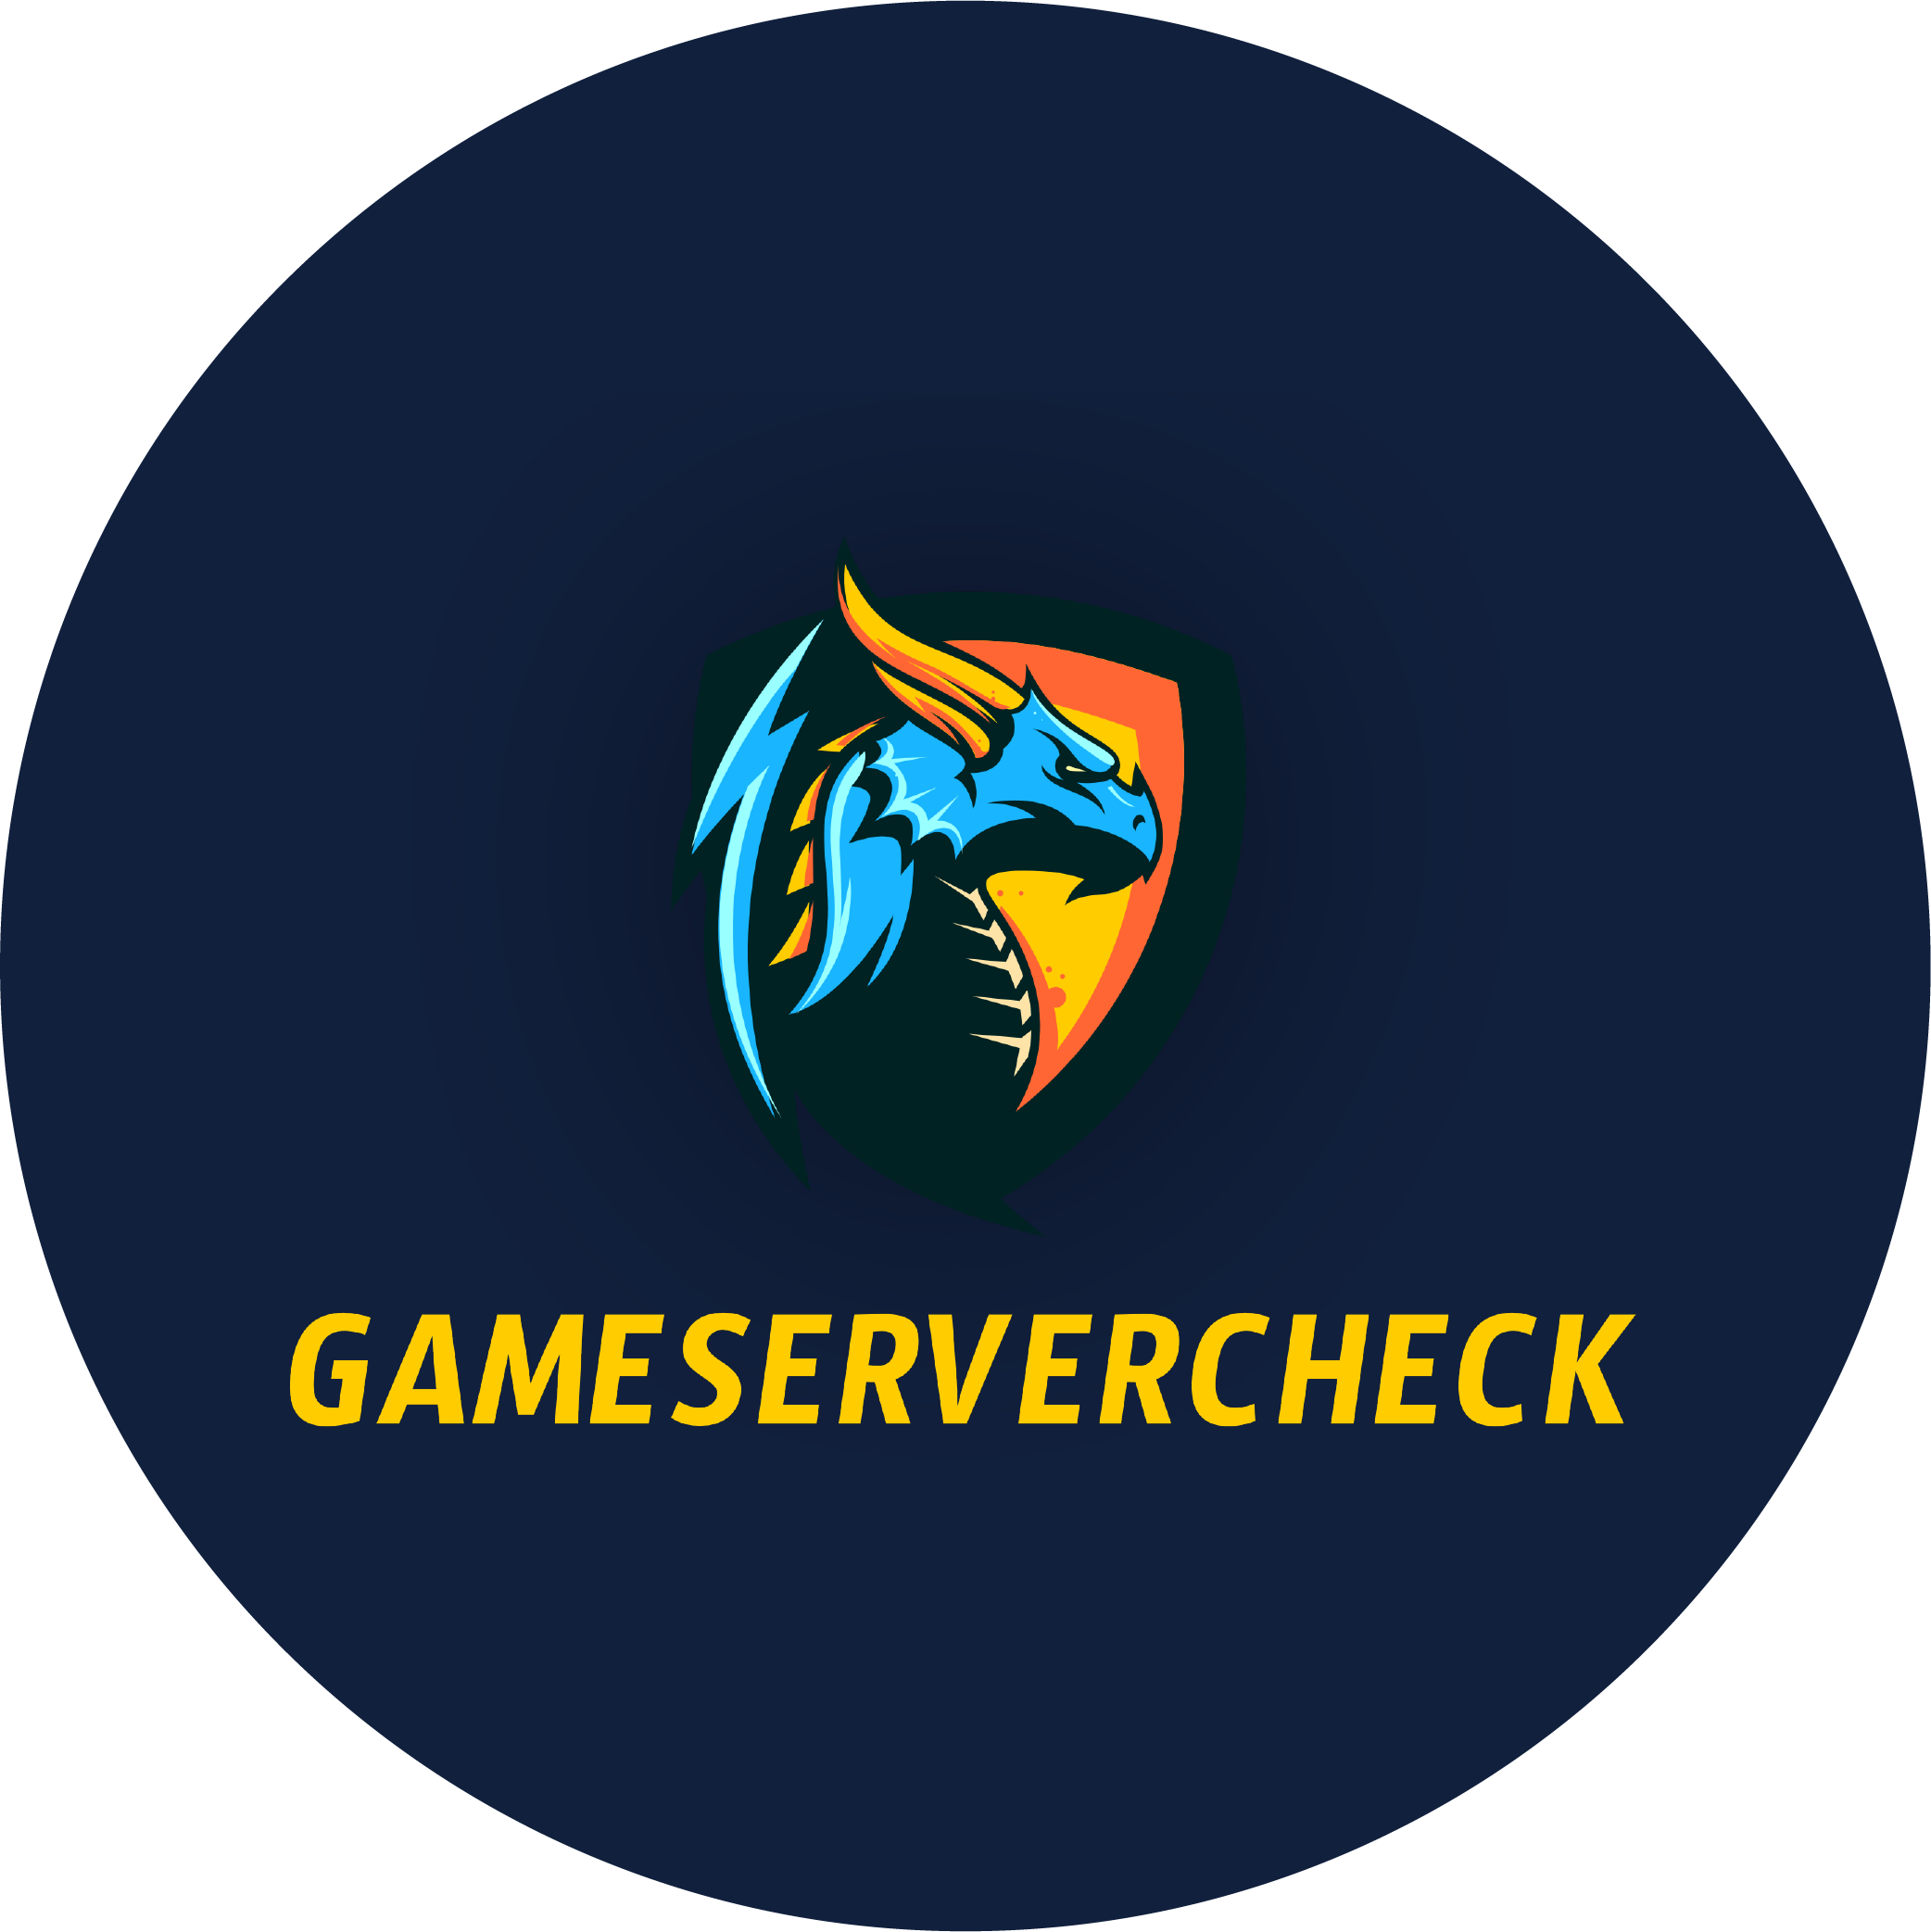 gameservercheck.png